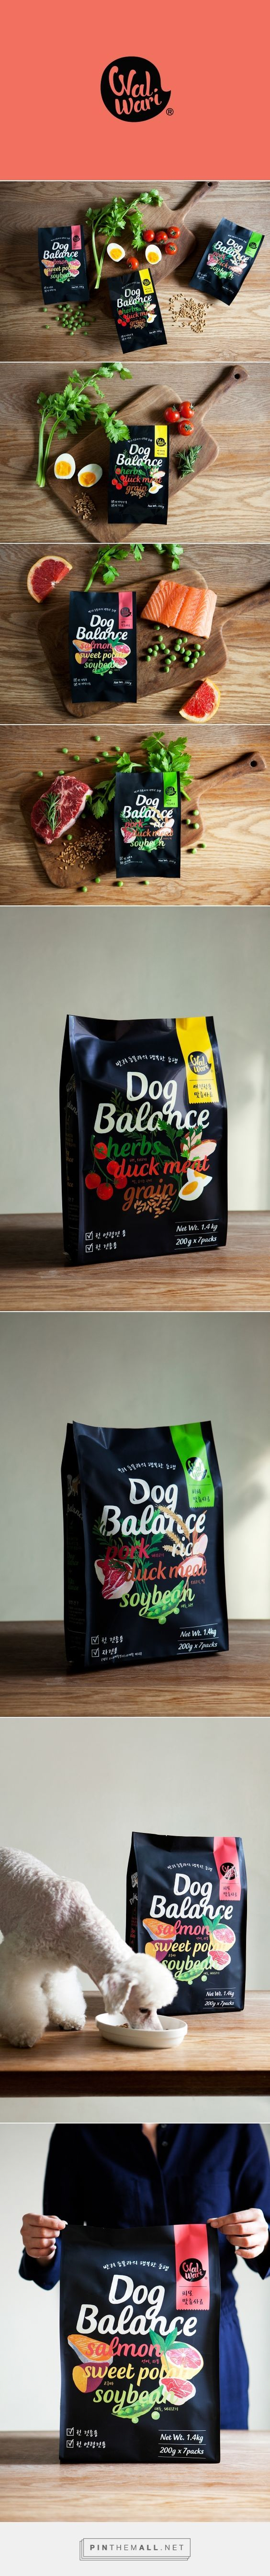 25 of the best food truck designs design galleries paste - A Grouped Images Picture Dog Balance Pet Food By Charry Jeon Saerom Kang Contentformcontext Kiwoong Hong